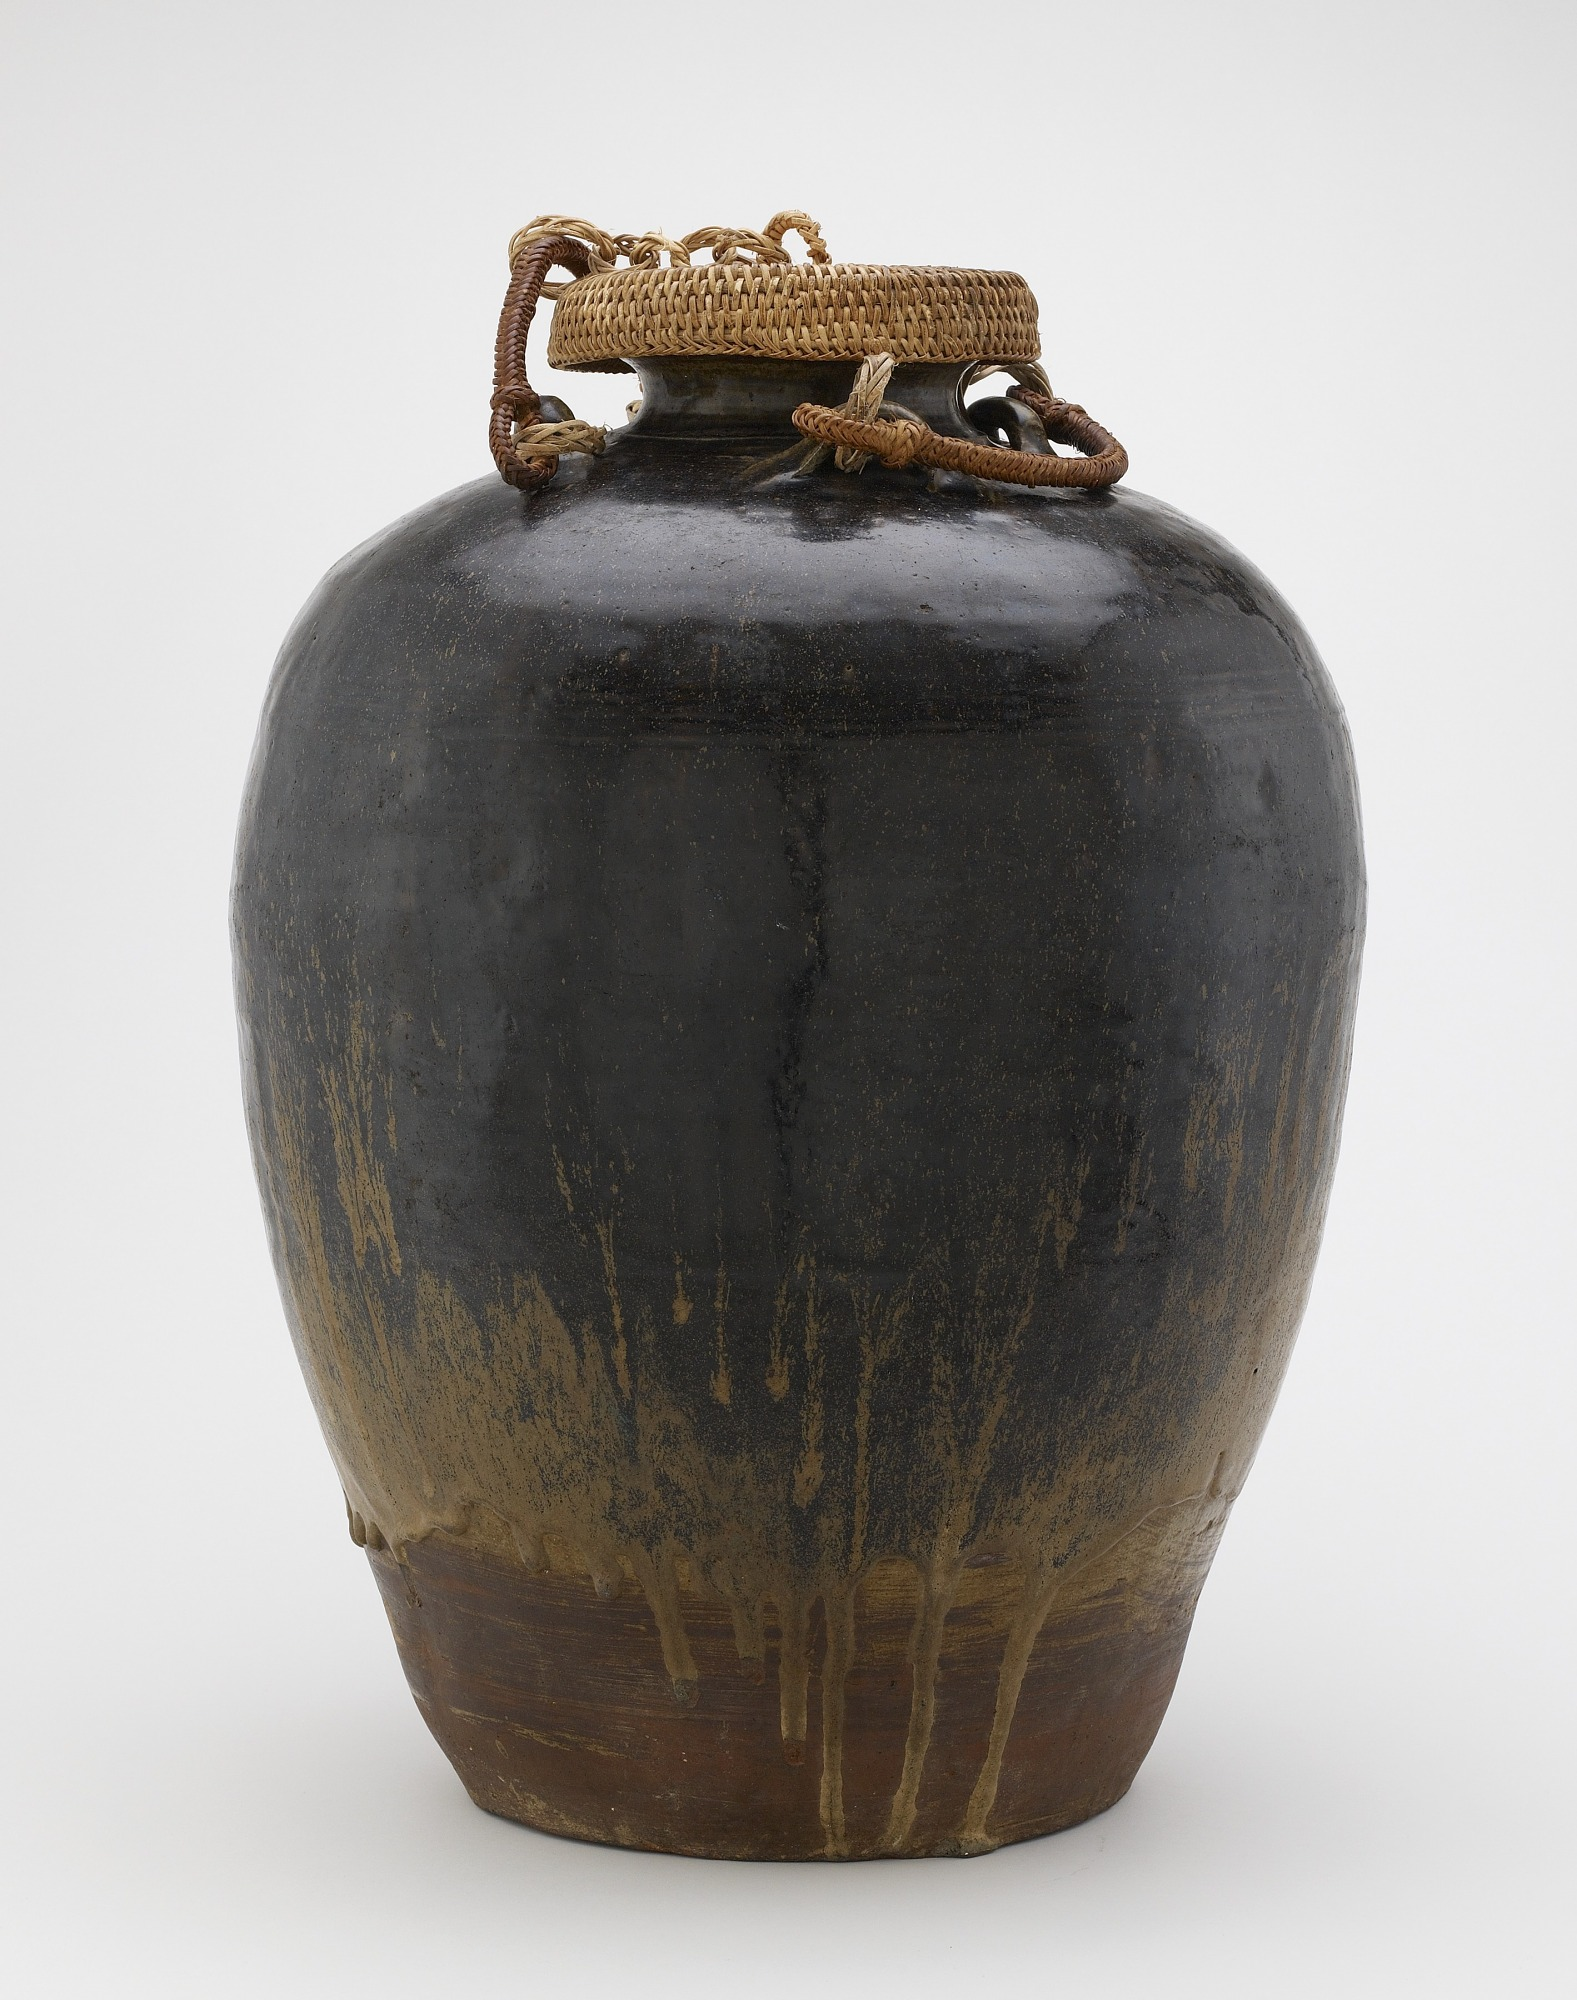 : Jar with four horizontal lugs